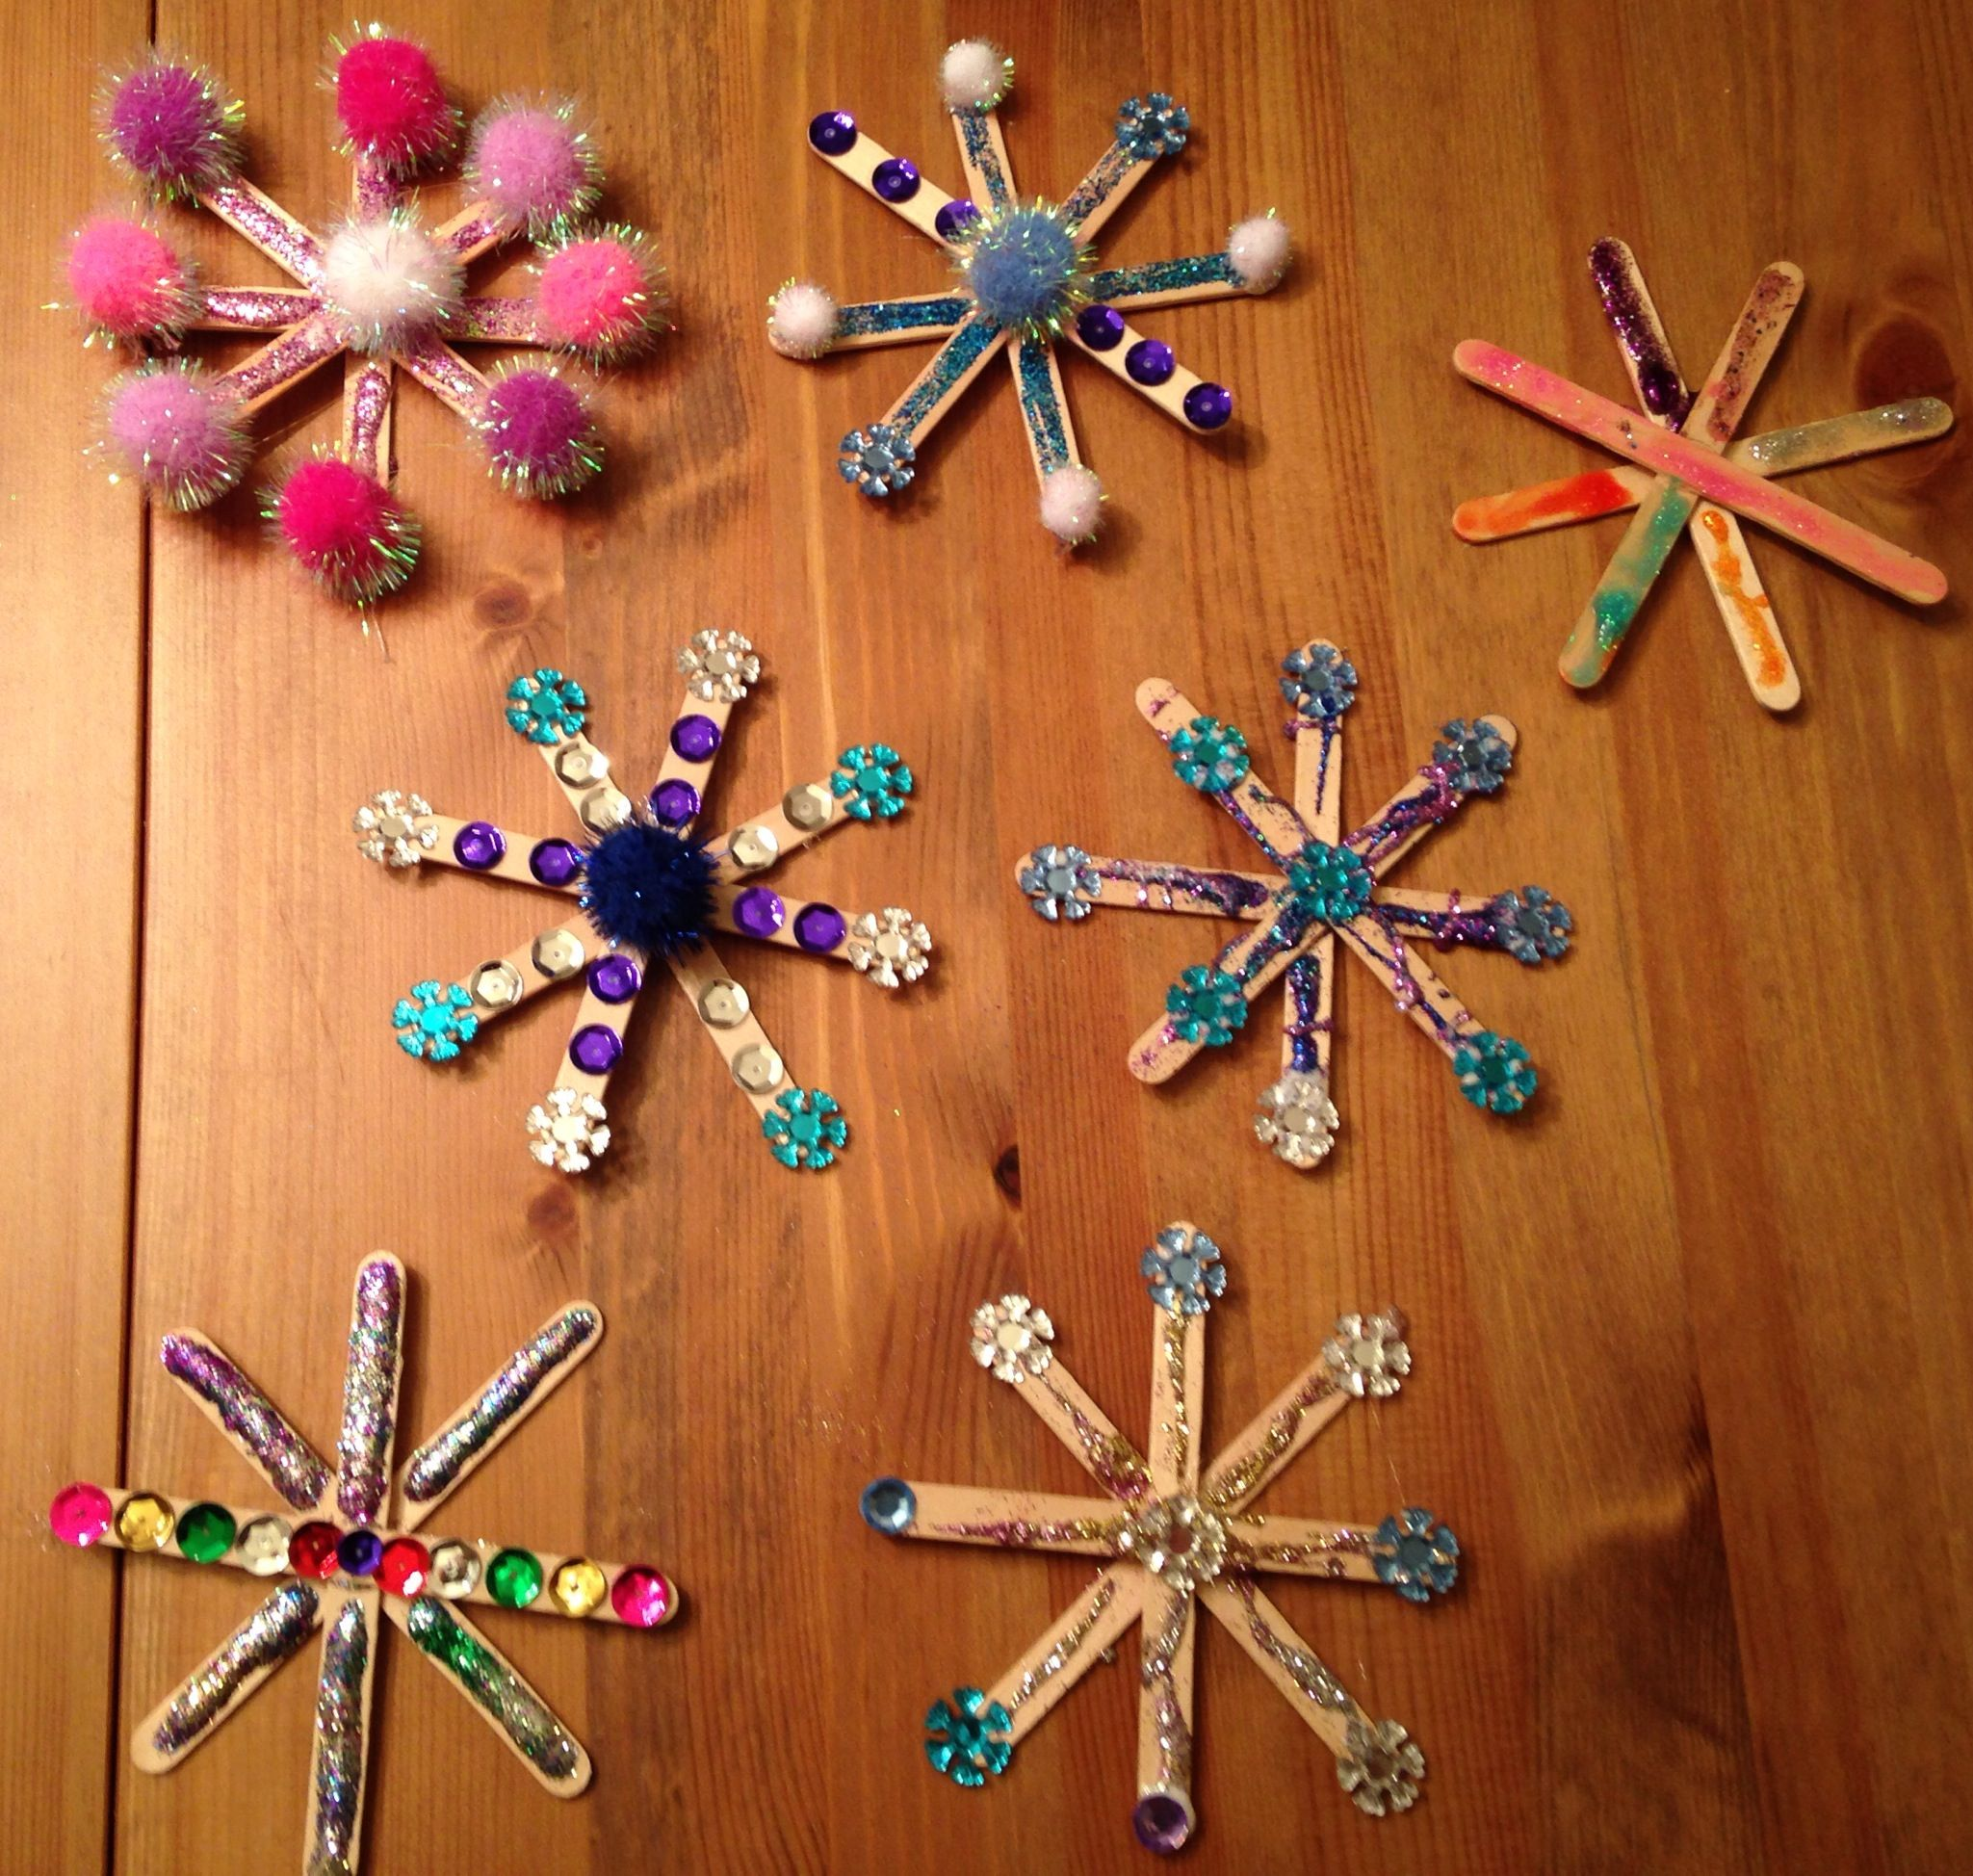 Popsicle Stick Snowflake Craft